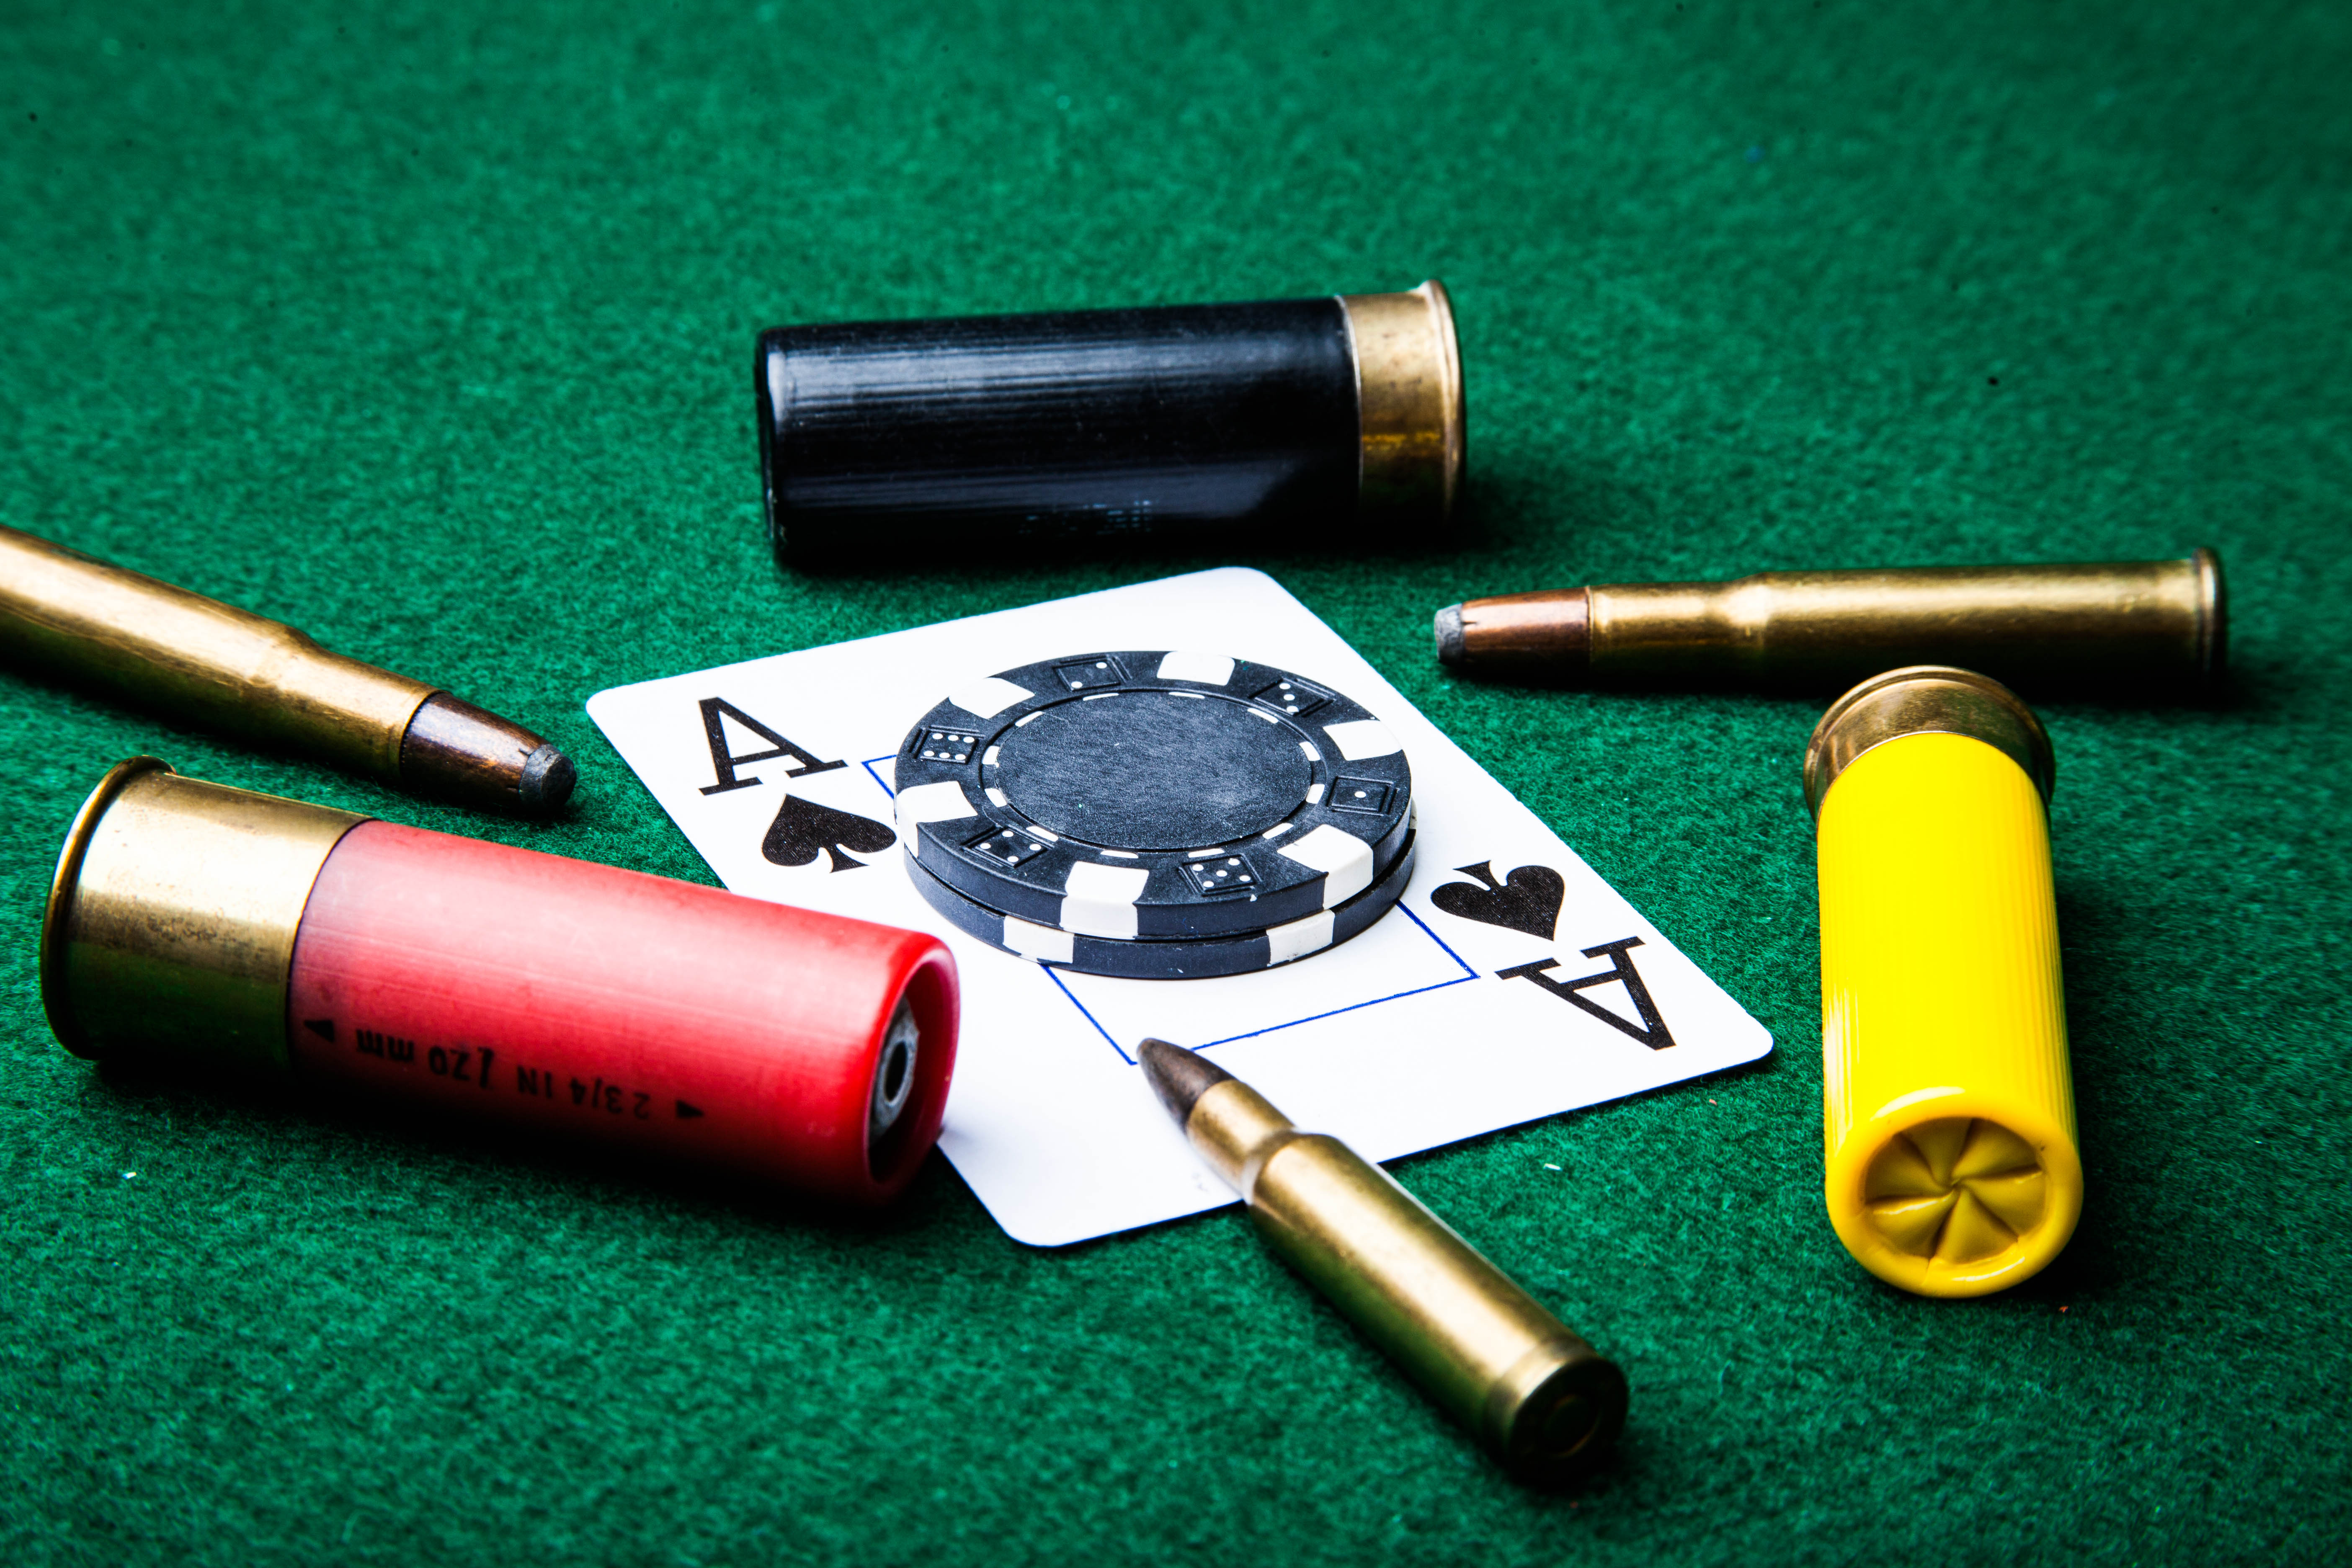 Bullets and ace of spades photo